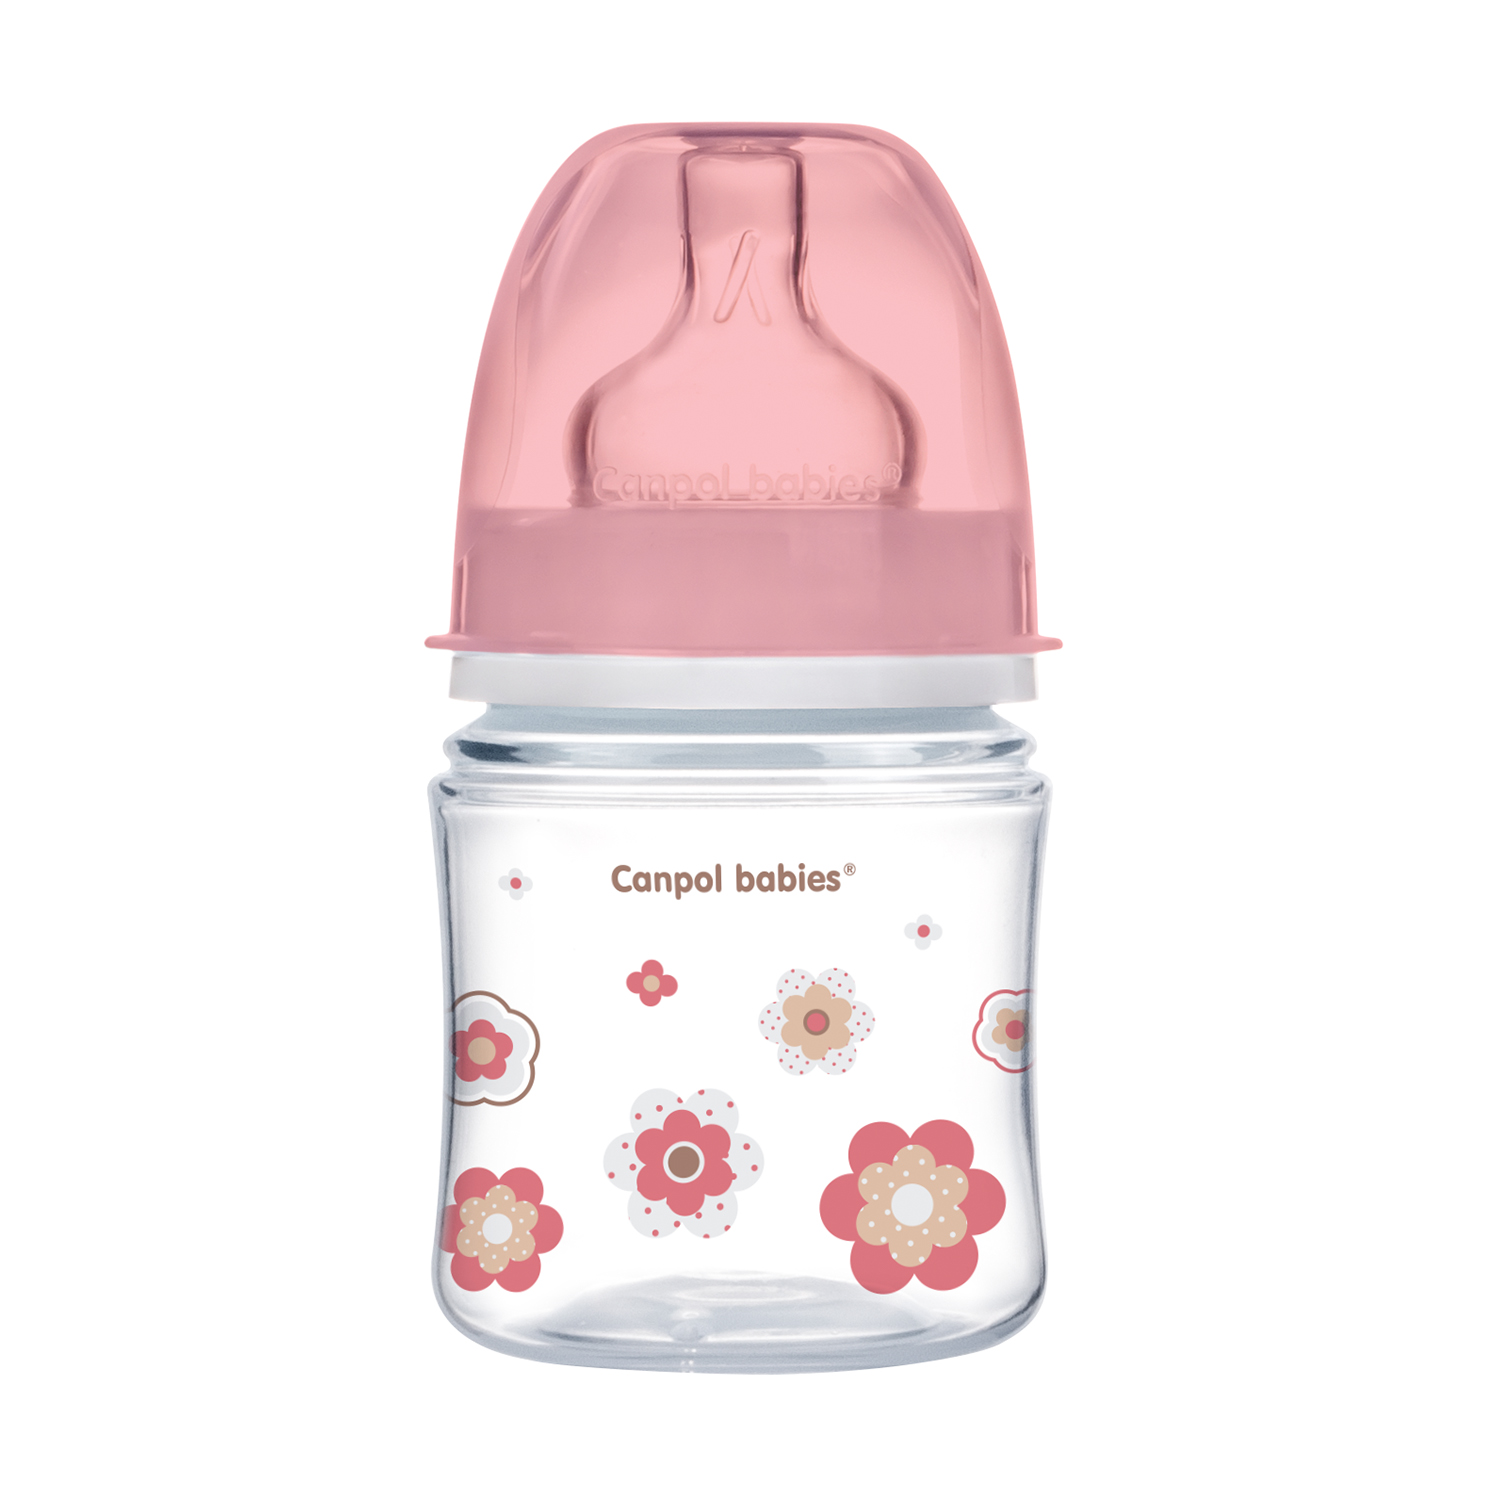 Canpol babies Easystart Anti-colic Wide Neck Bottle 120ml PP NEWBORN BABY pink